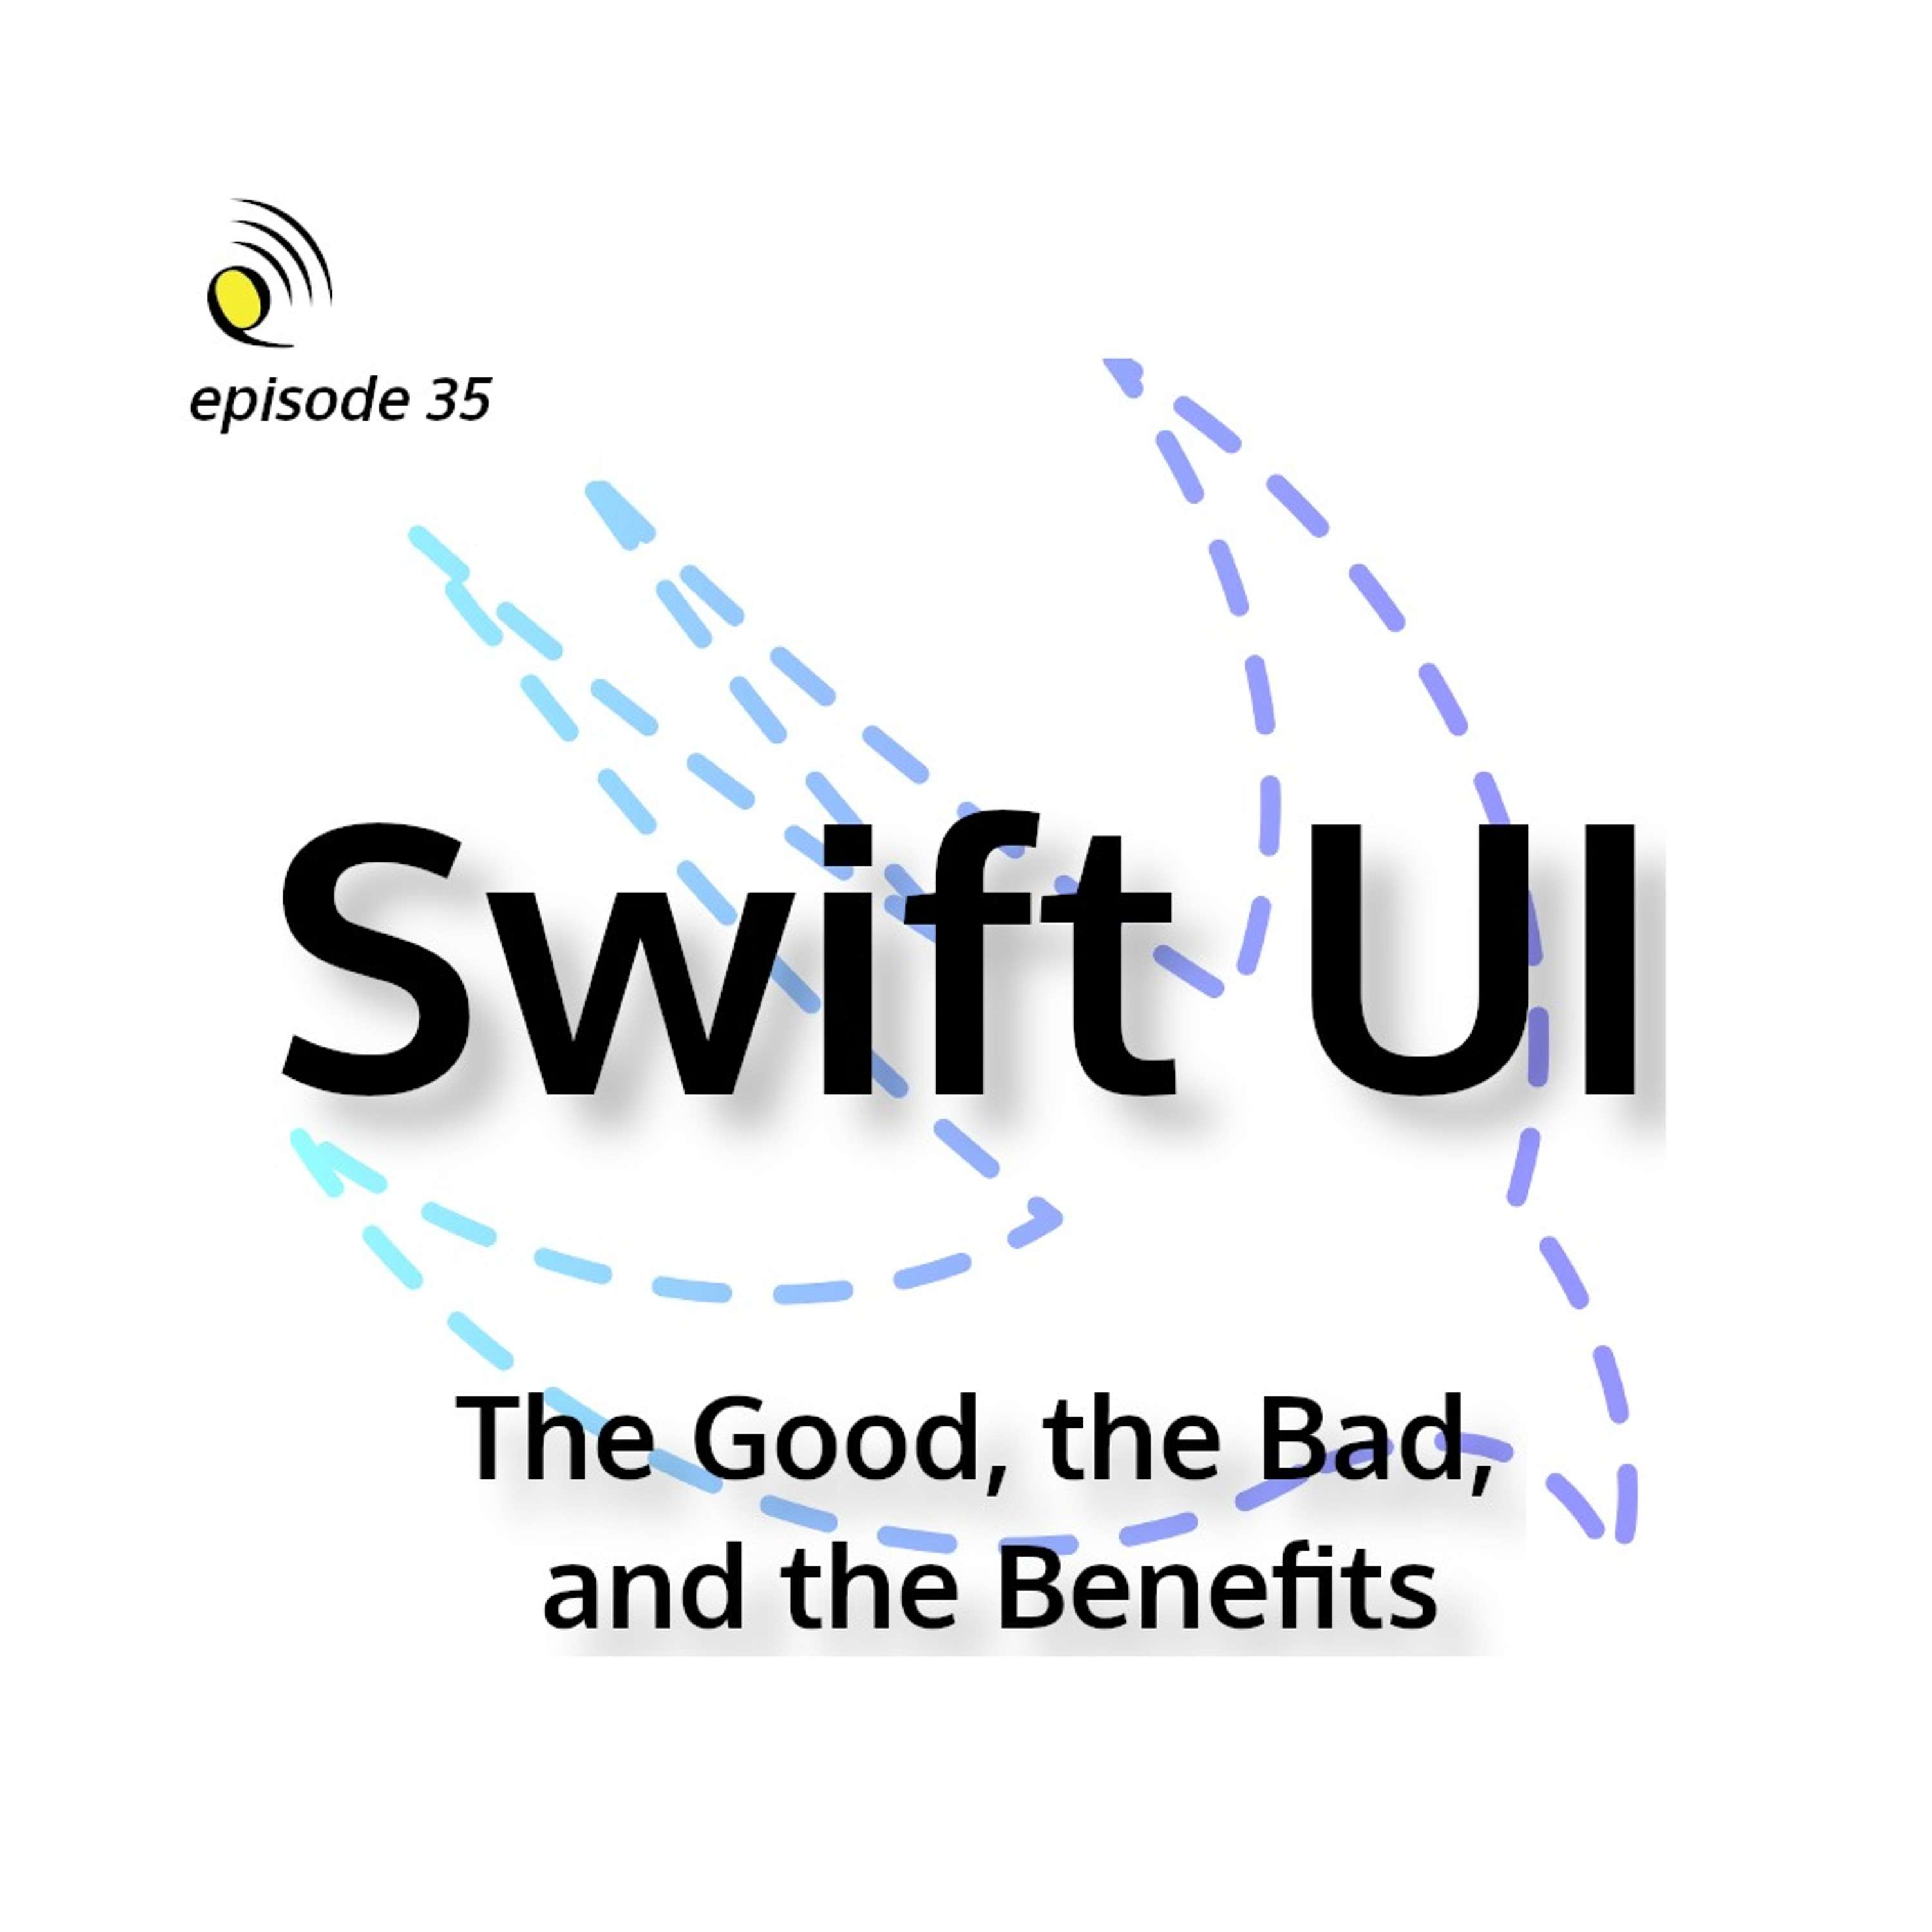 SwiftUI - The Good, the Bad, and the Benefits